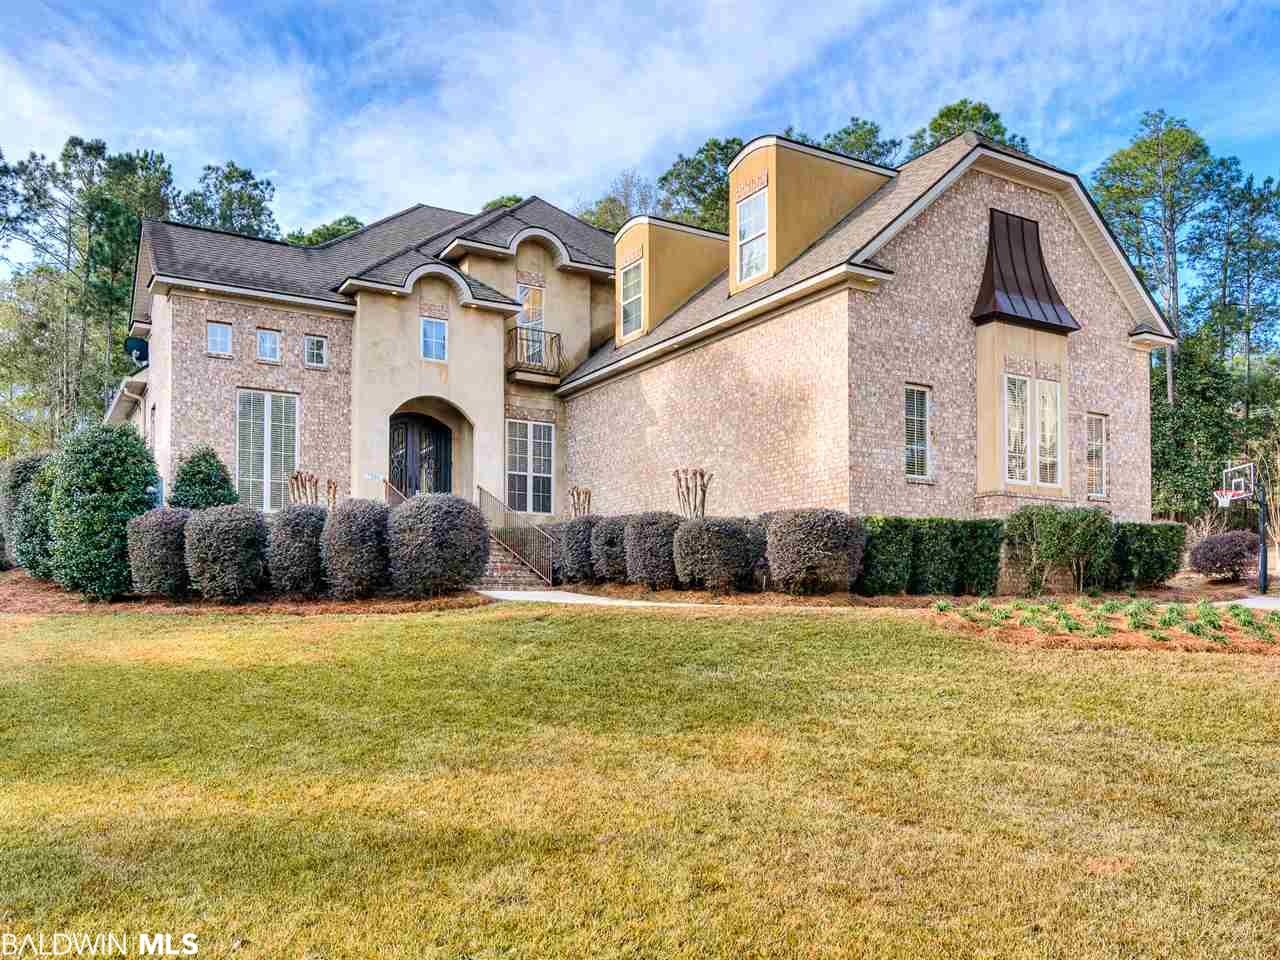 7116 Applewater Court, Spanish Fort, AL 36527